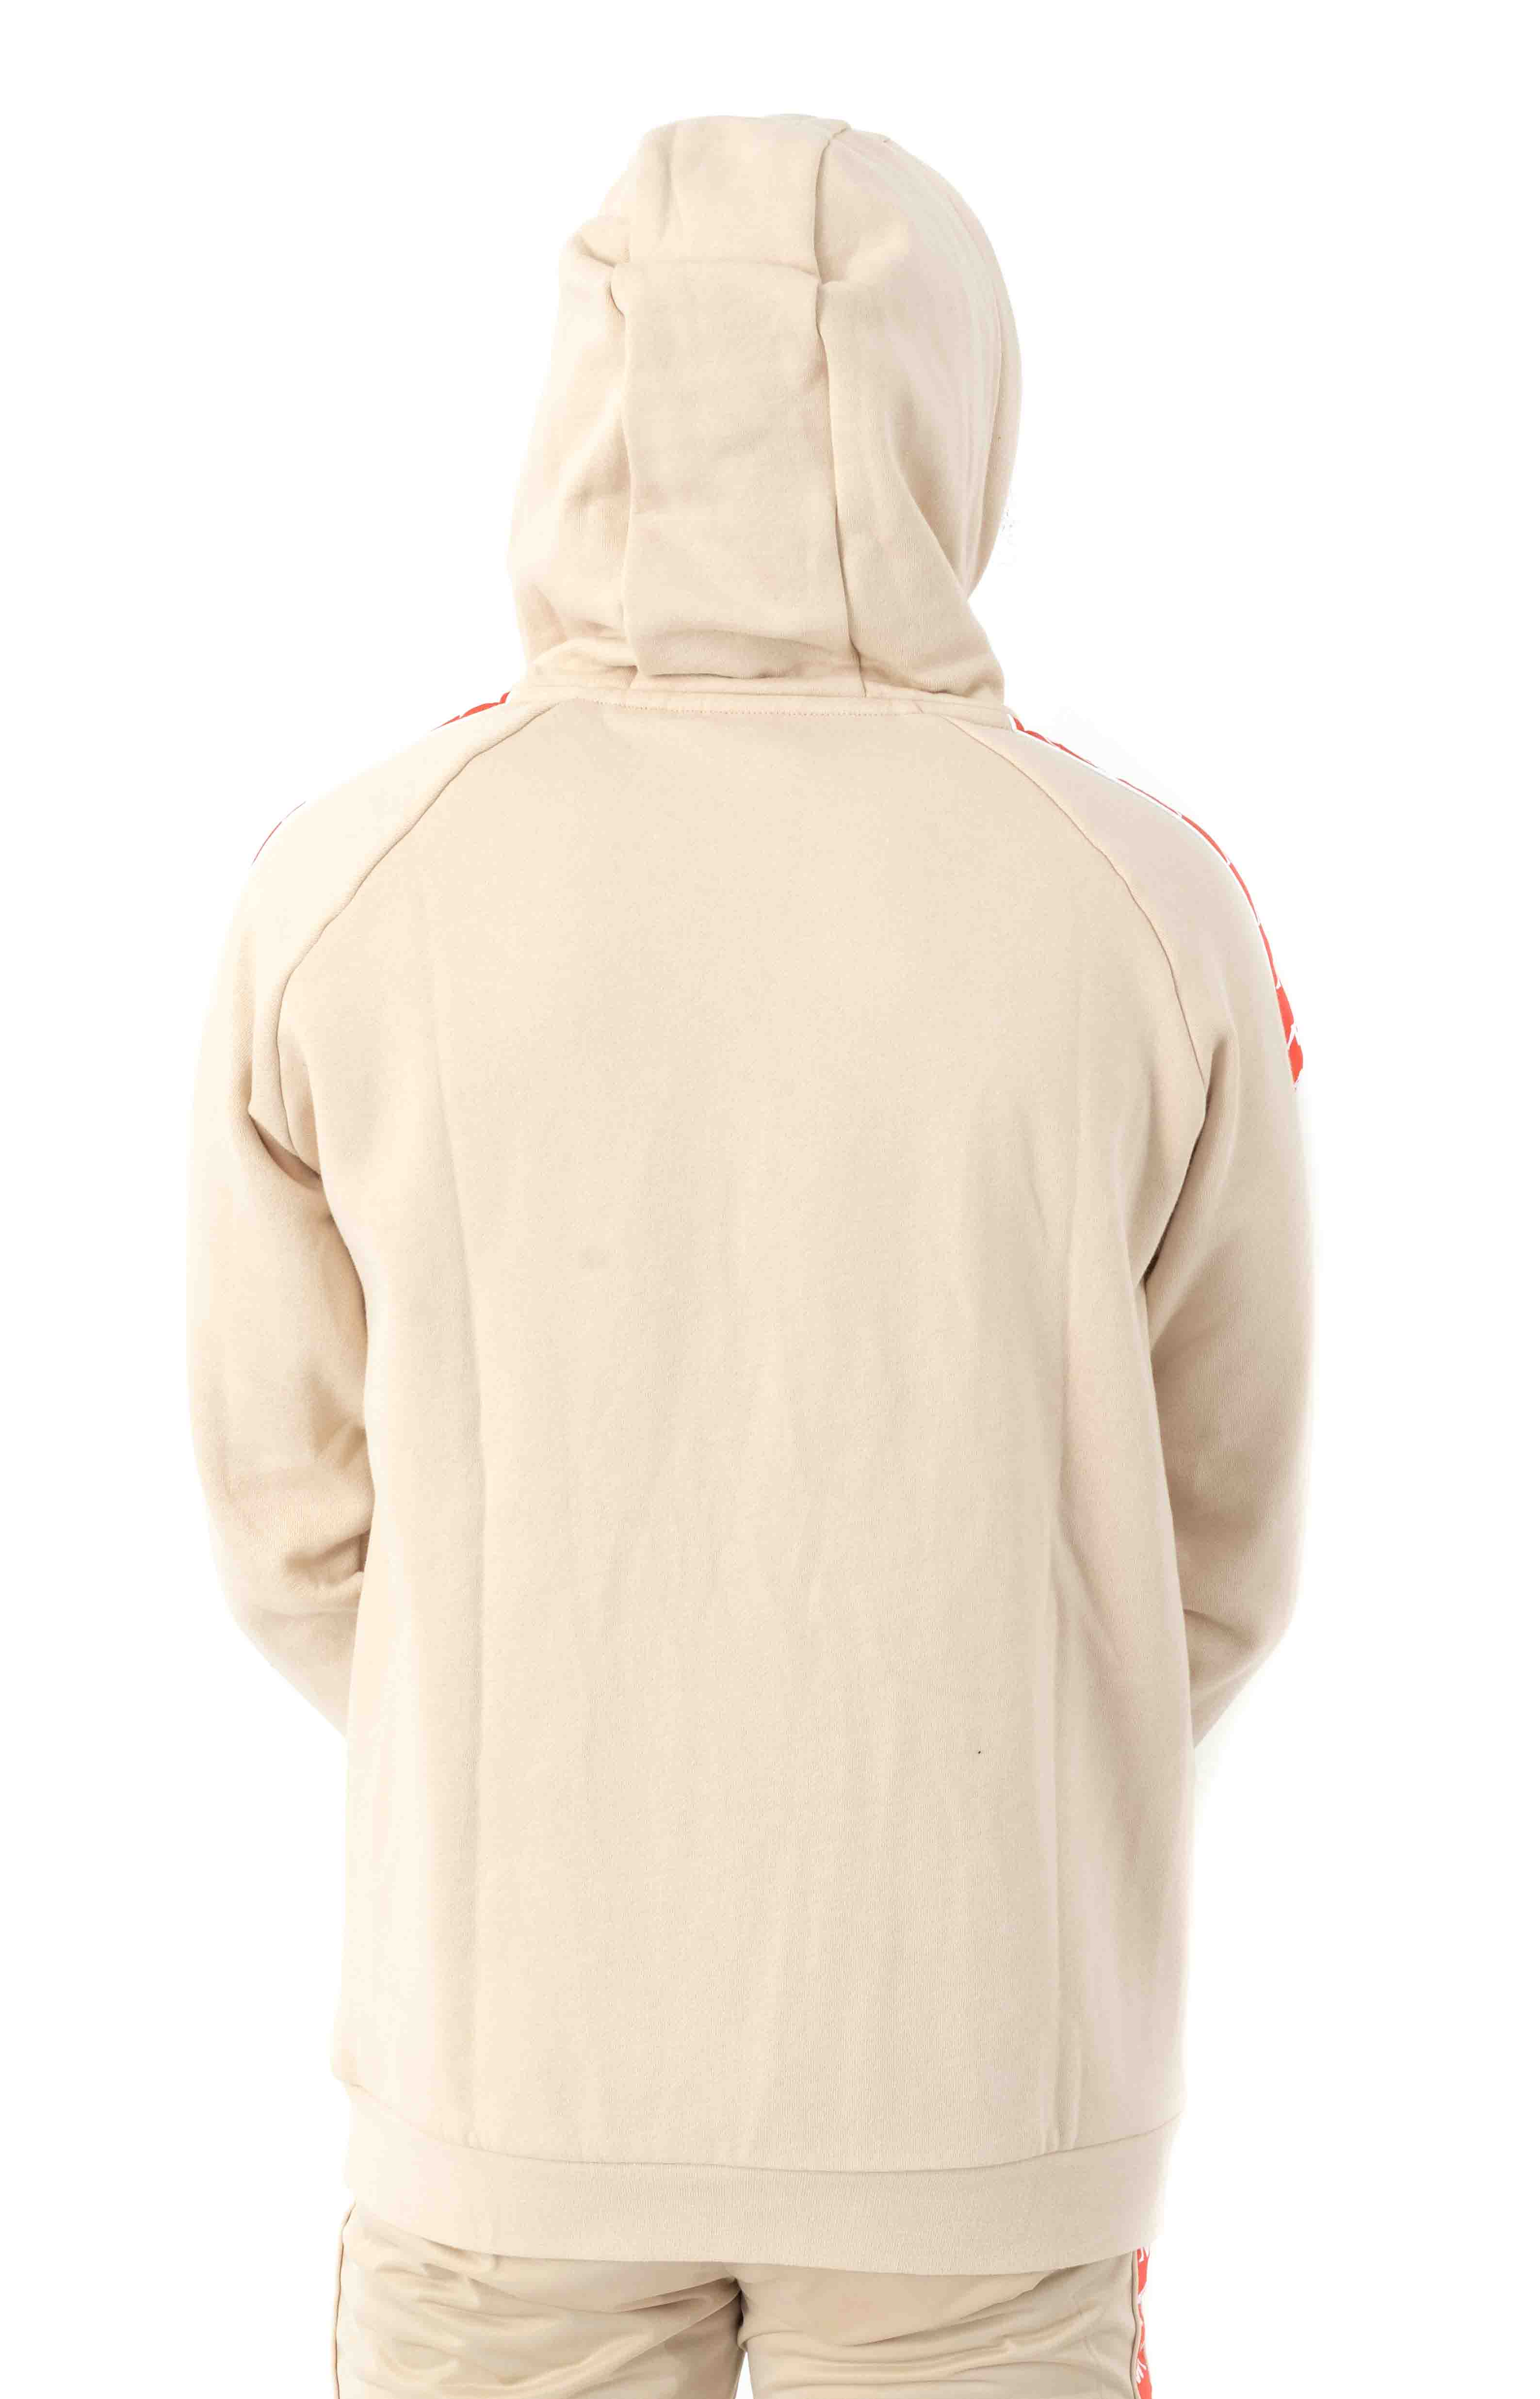 222 Banda Authentic Hurtado 2 Pullover Hoodie - Beige/Orange 3